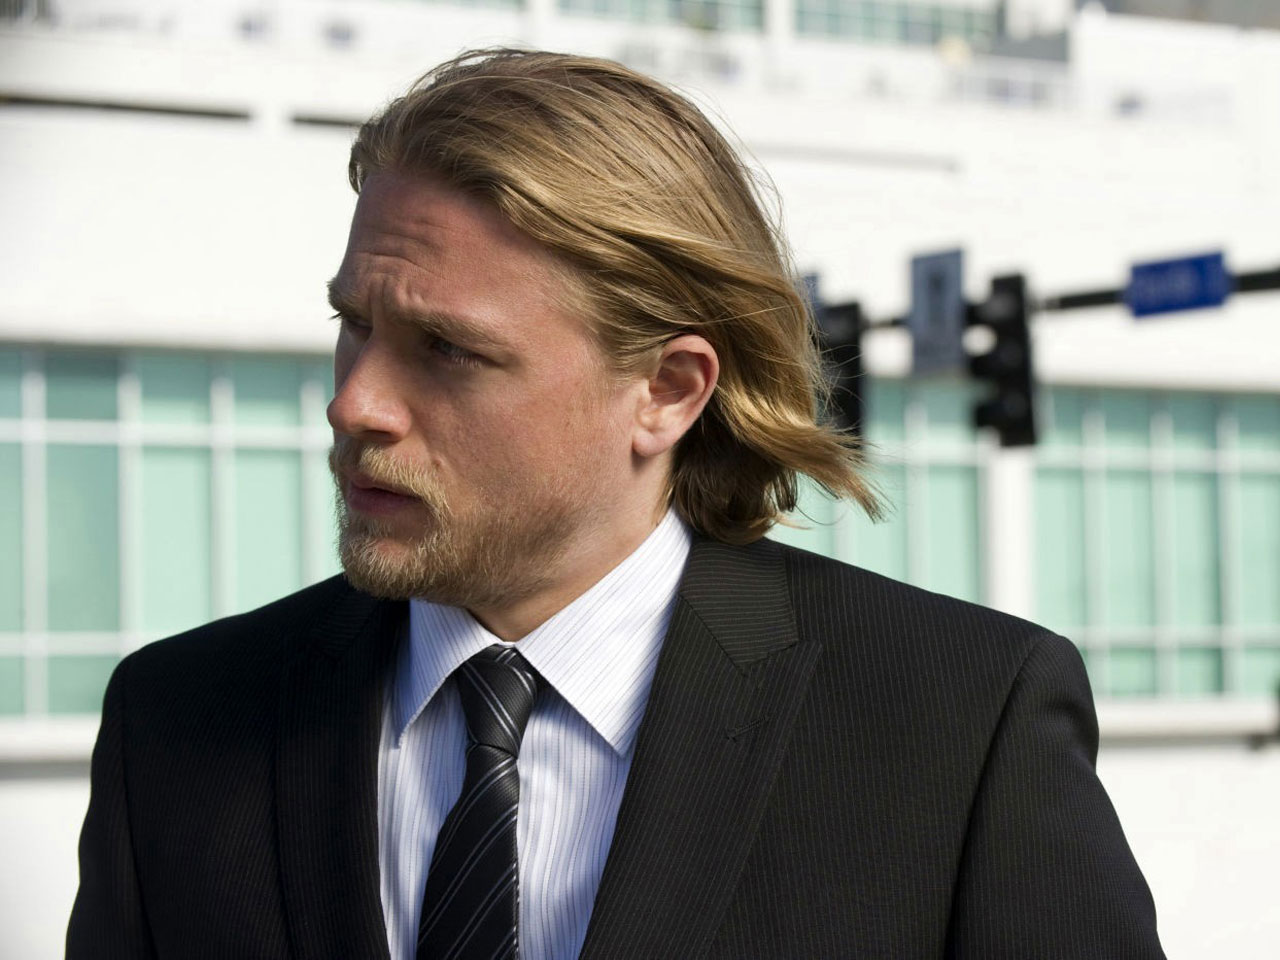 Charlie Hunnam Wallpapers: Charlie Hunnam Wallpaper Images